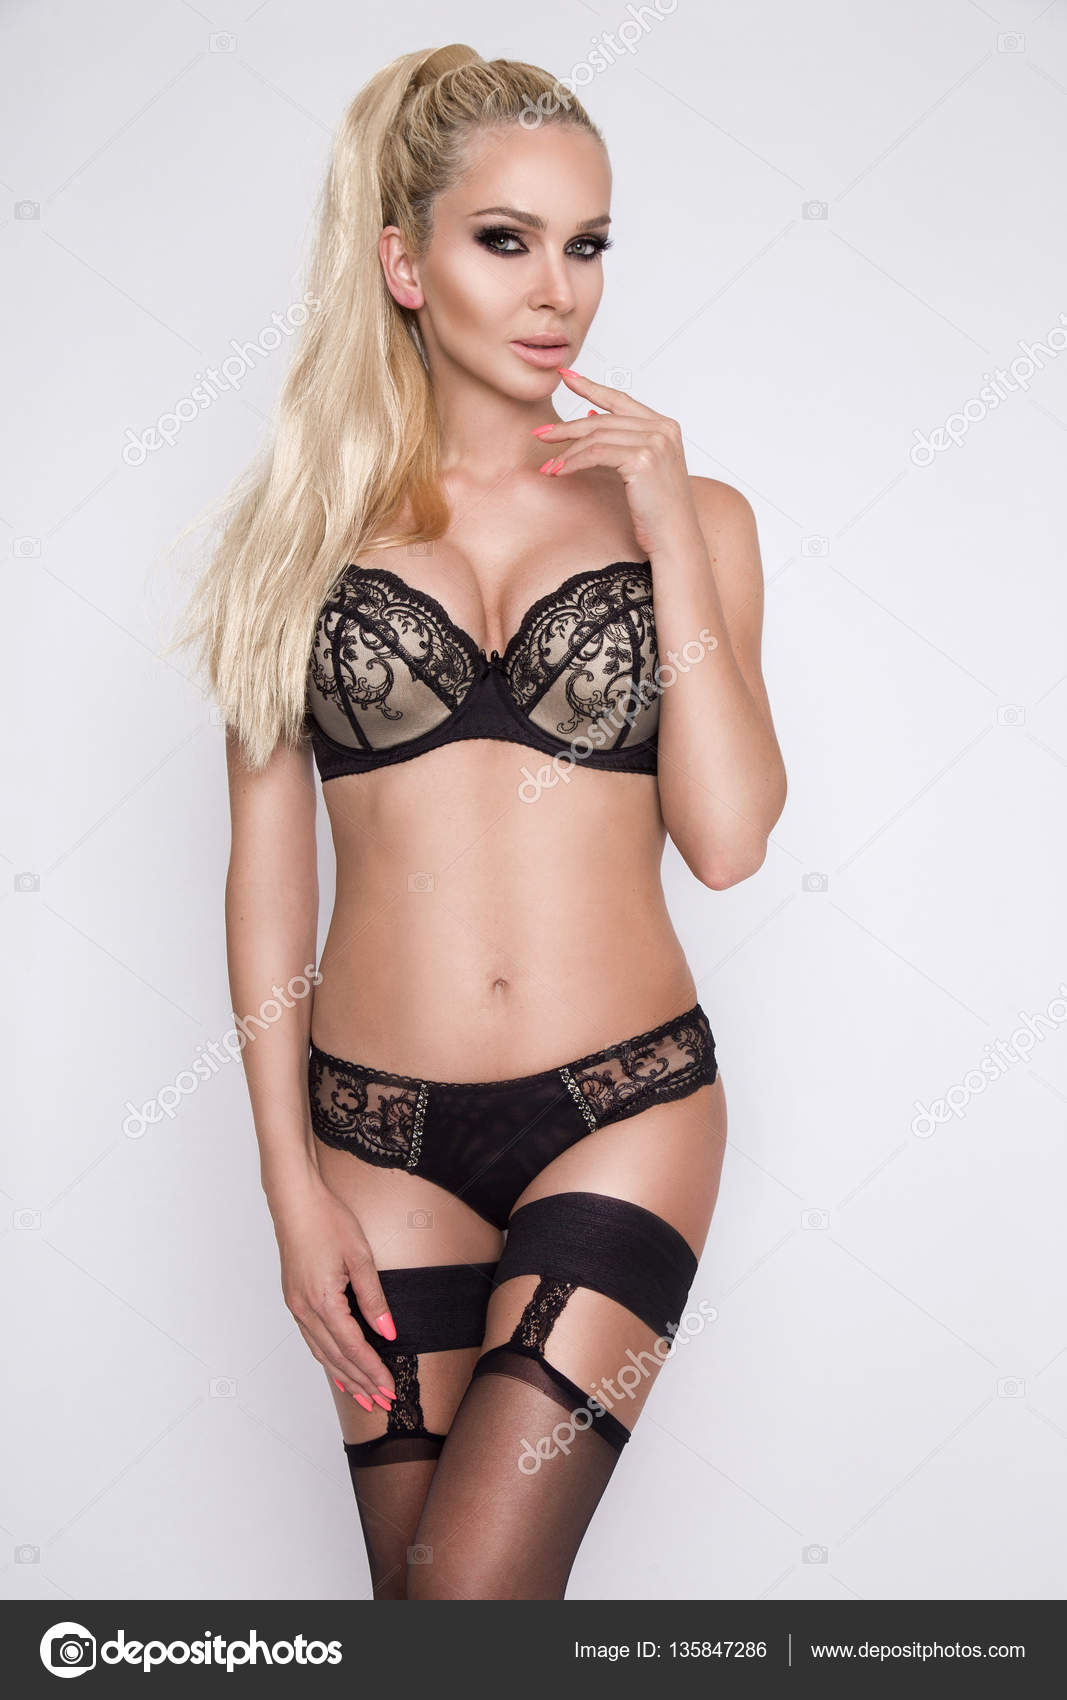 beautiful woman blonde long hair green eyes in black sexy lingerie